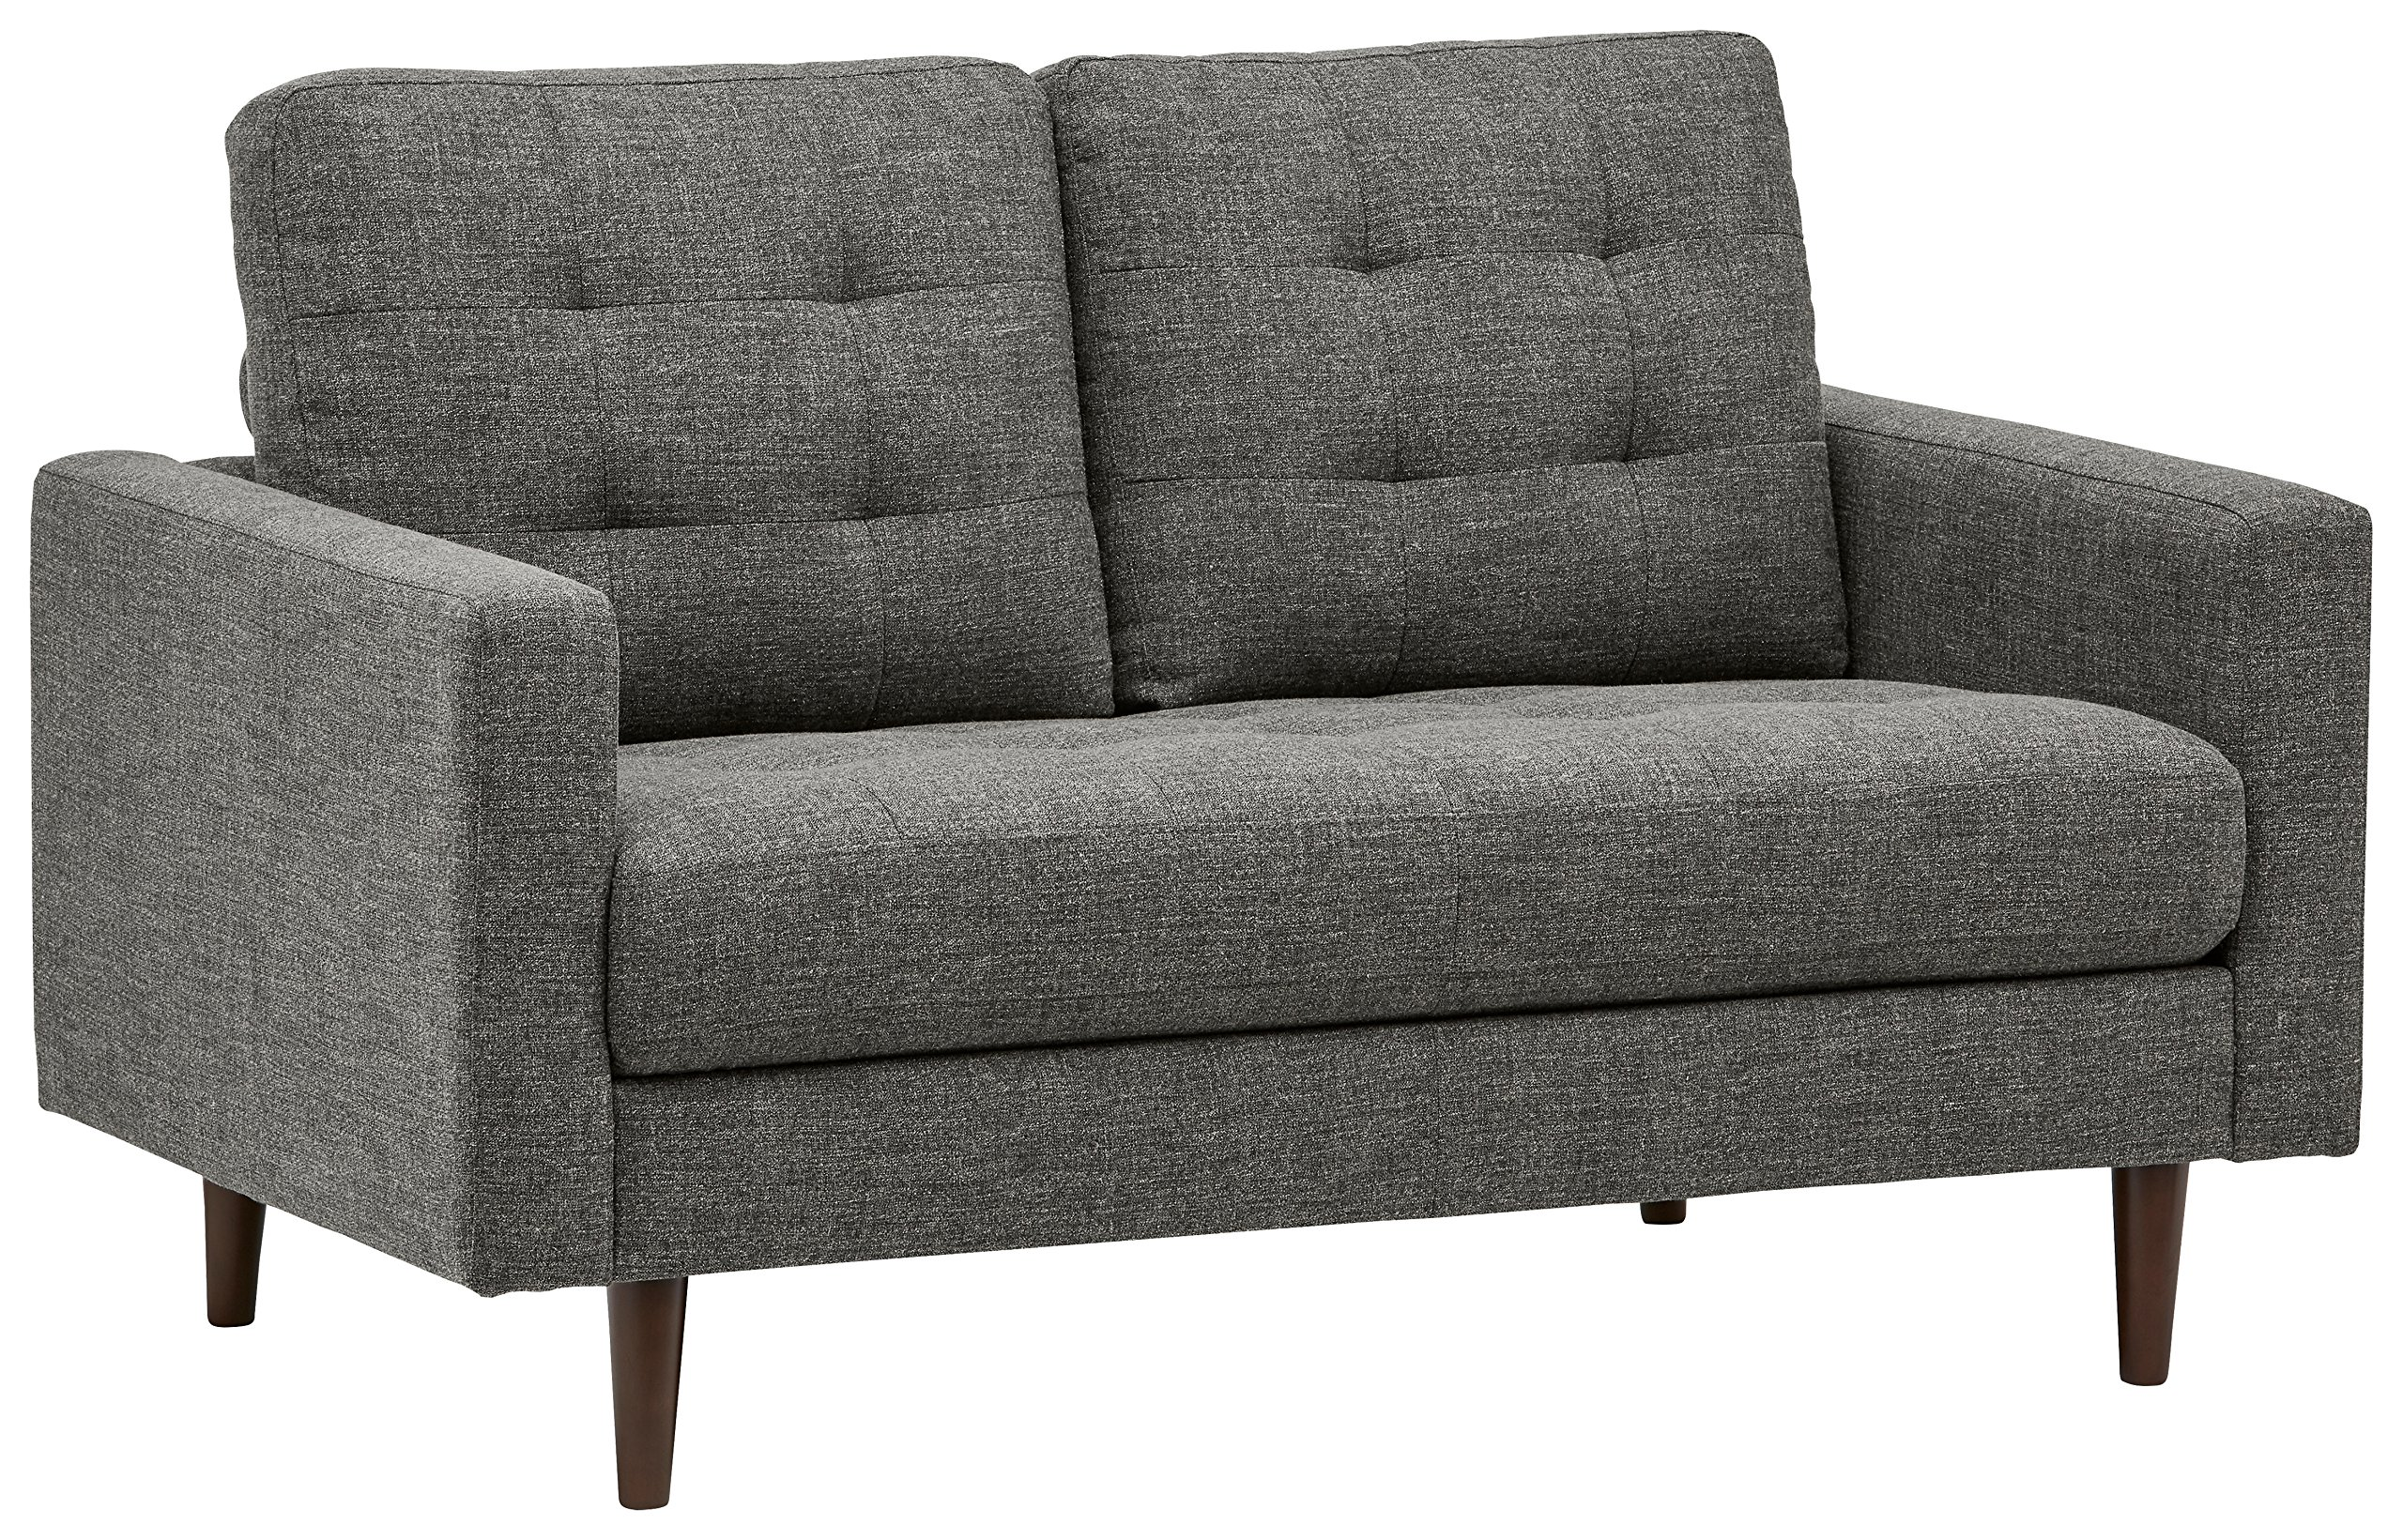 Rivet Cove Modern Tufted Loveseat with Tapered Legs, Mid-Century, 56''W, Dark Grey by Rivet